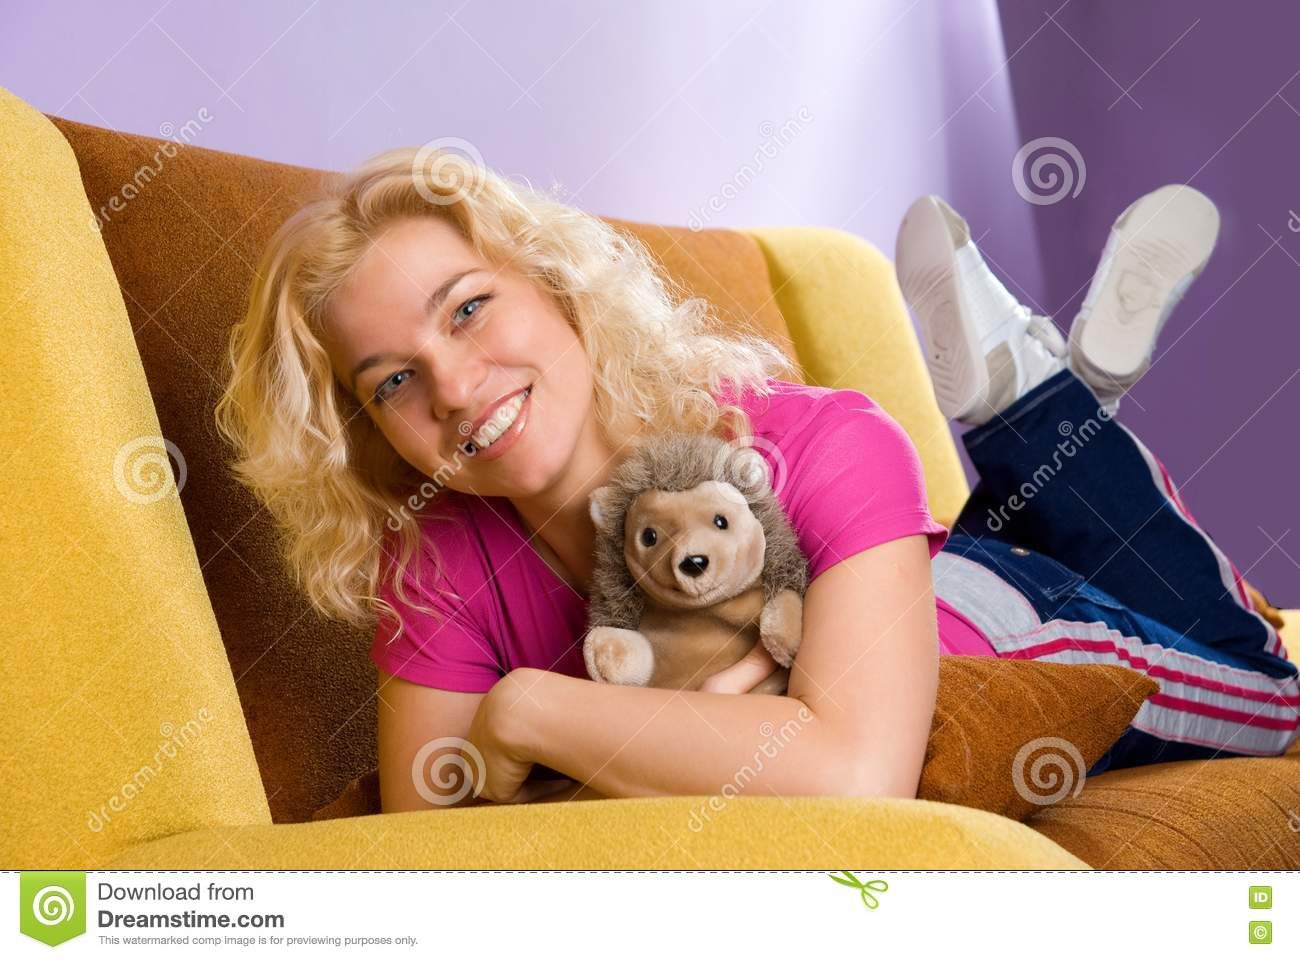 Blonde at the couch